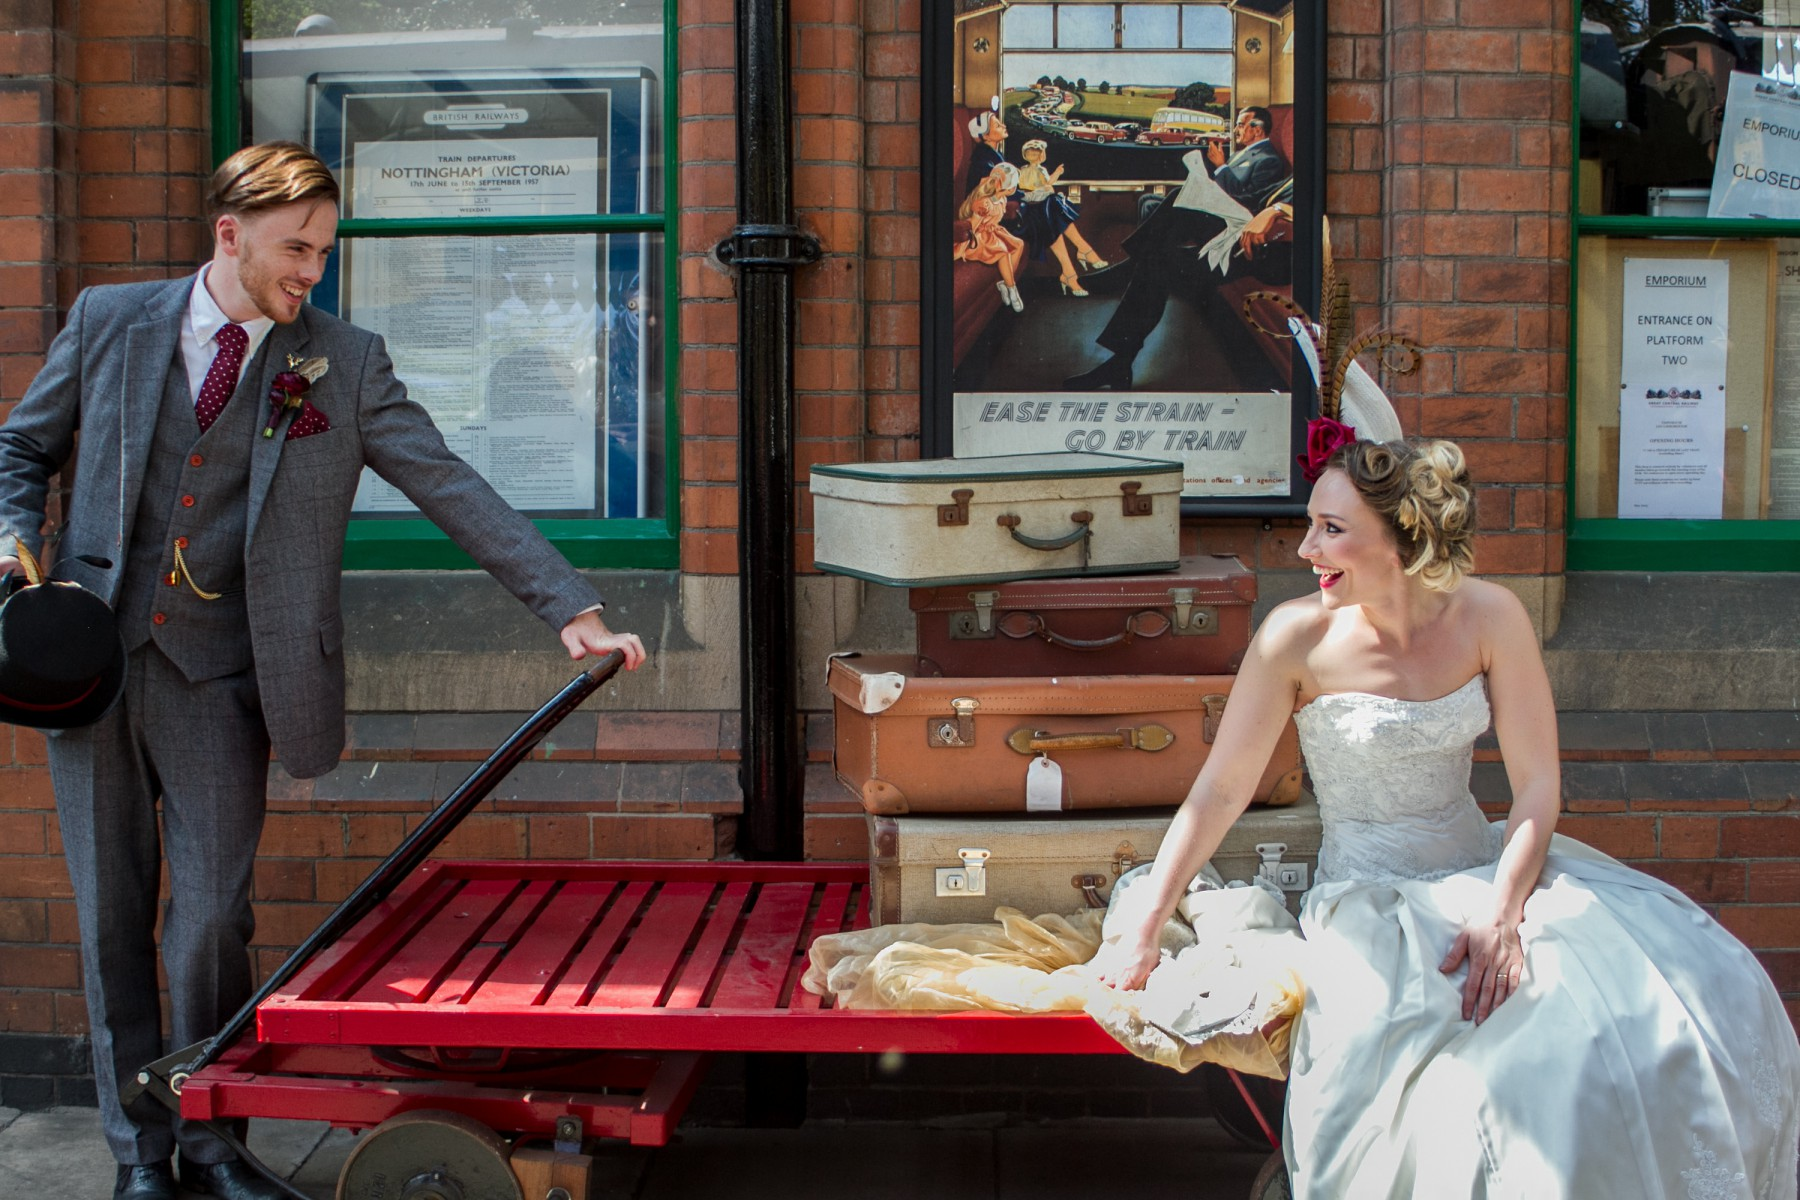 Iso Elegant Photography - Leicester wedding network - Railway wedding - vintage wedding 39